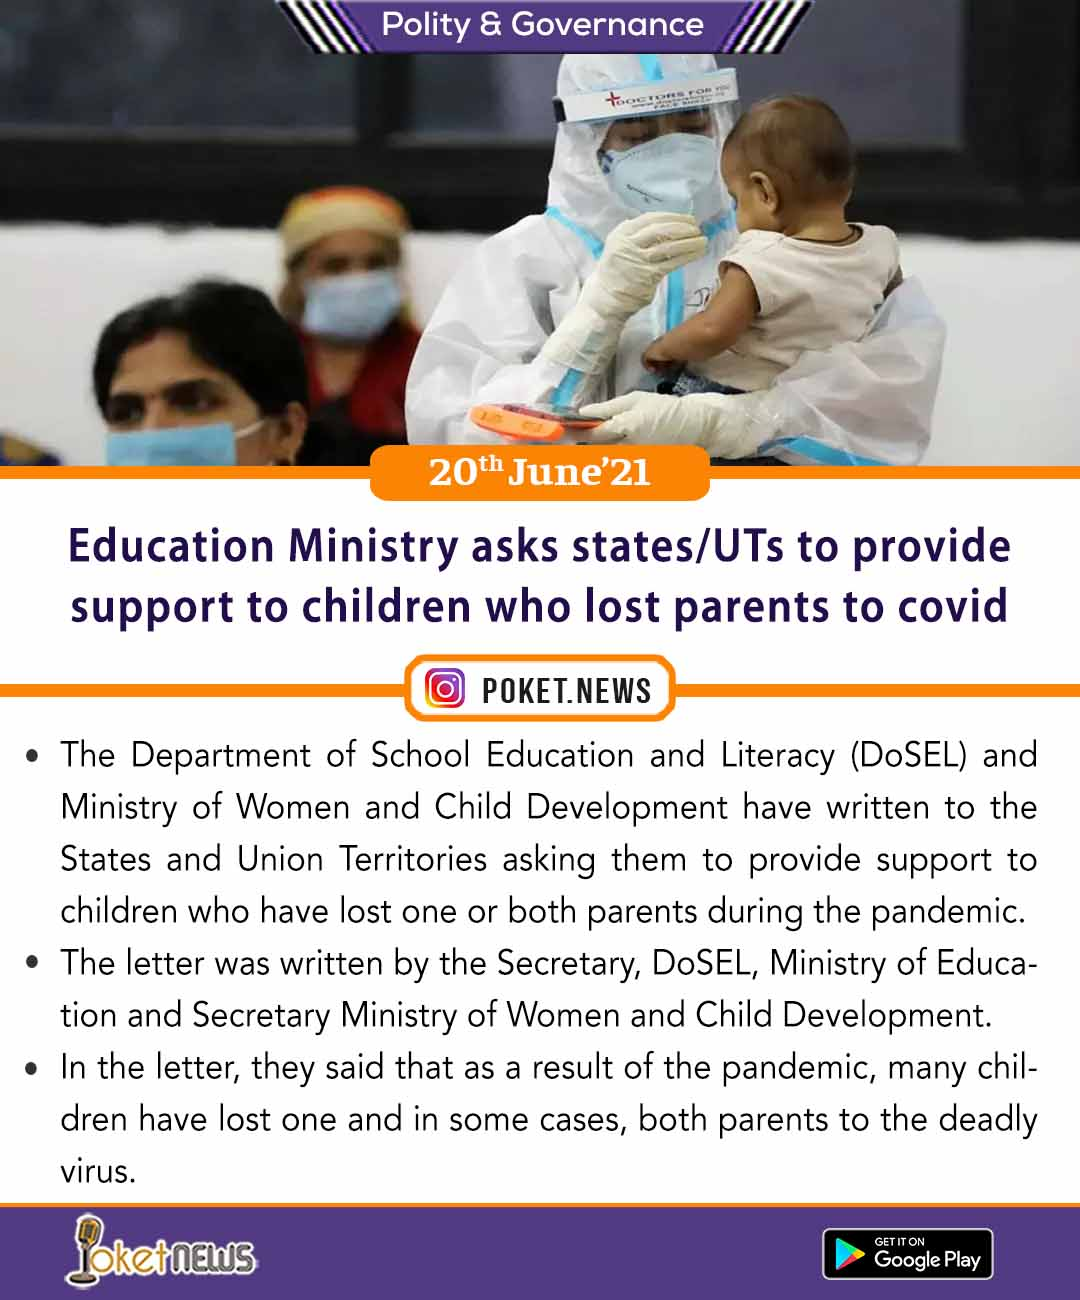 Education Ministry asks states/UTs to provide support to children who lost parents to covid